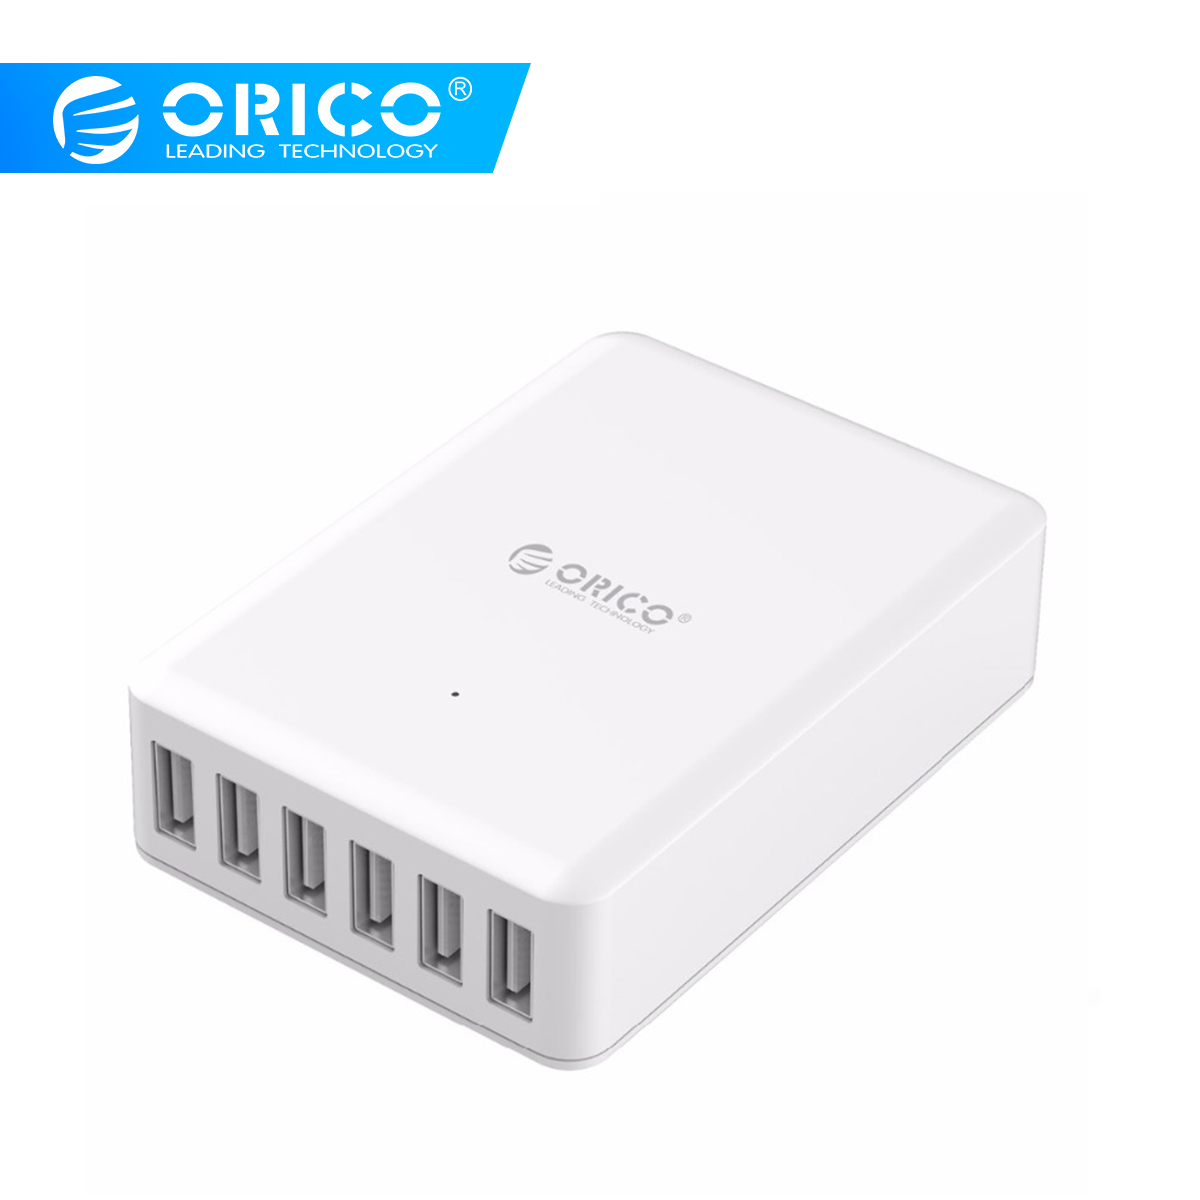 ORICO Universal USB Charger 6 Ports Smart Charger 5V2.4A Max Output 50W Mobile Phone Desktop Charger for iPhone Samsung Xiaomi-in Mobile Phone Chargers from Cellphones & Telecommunications